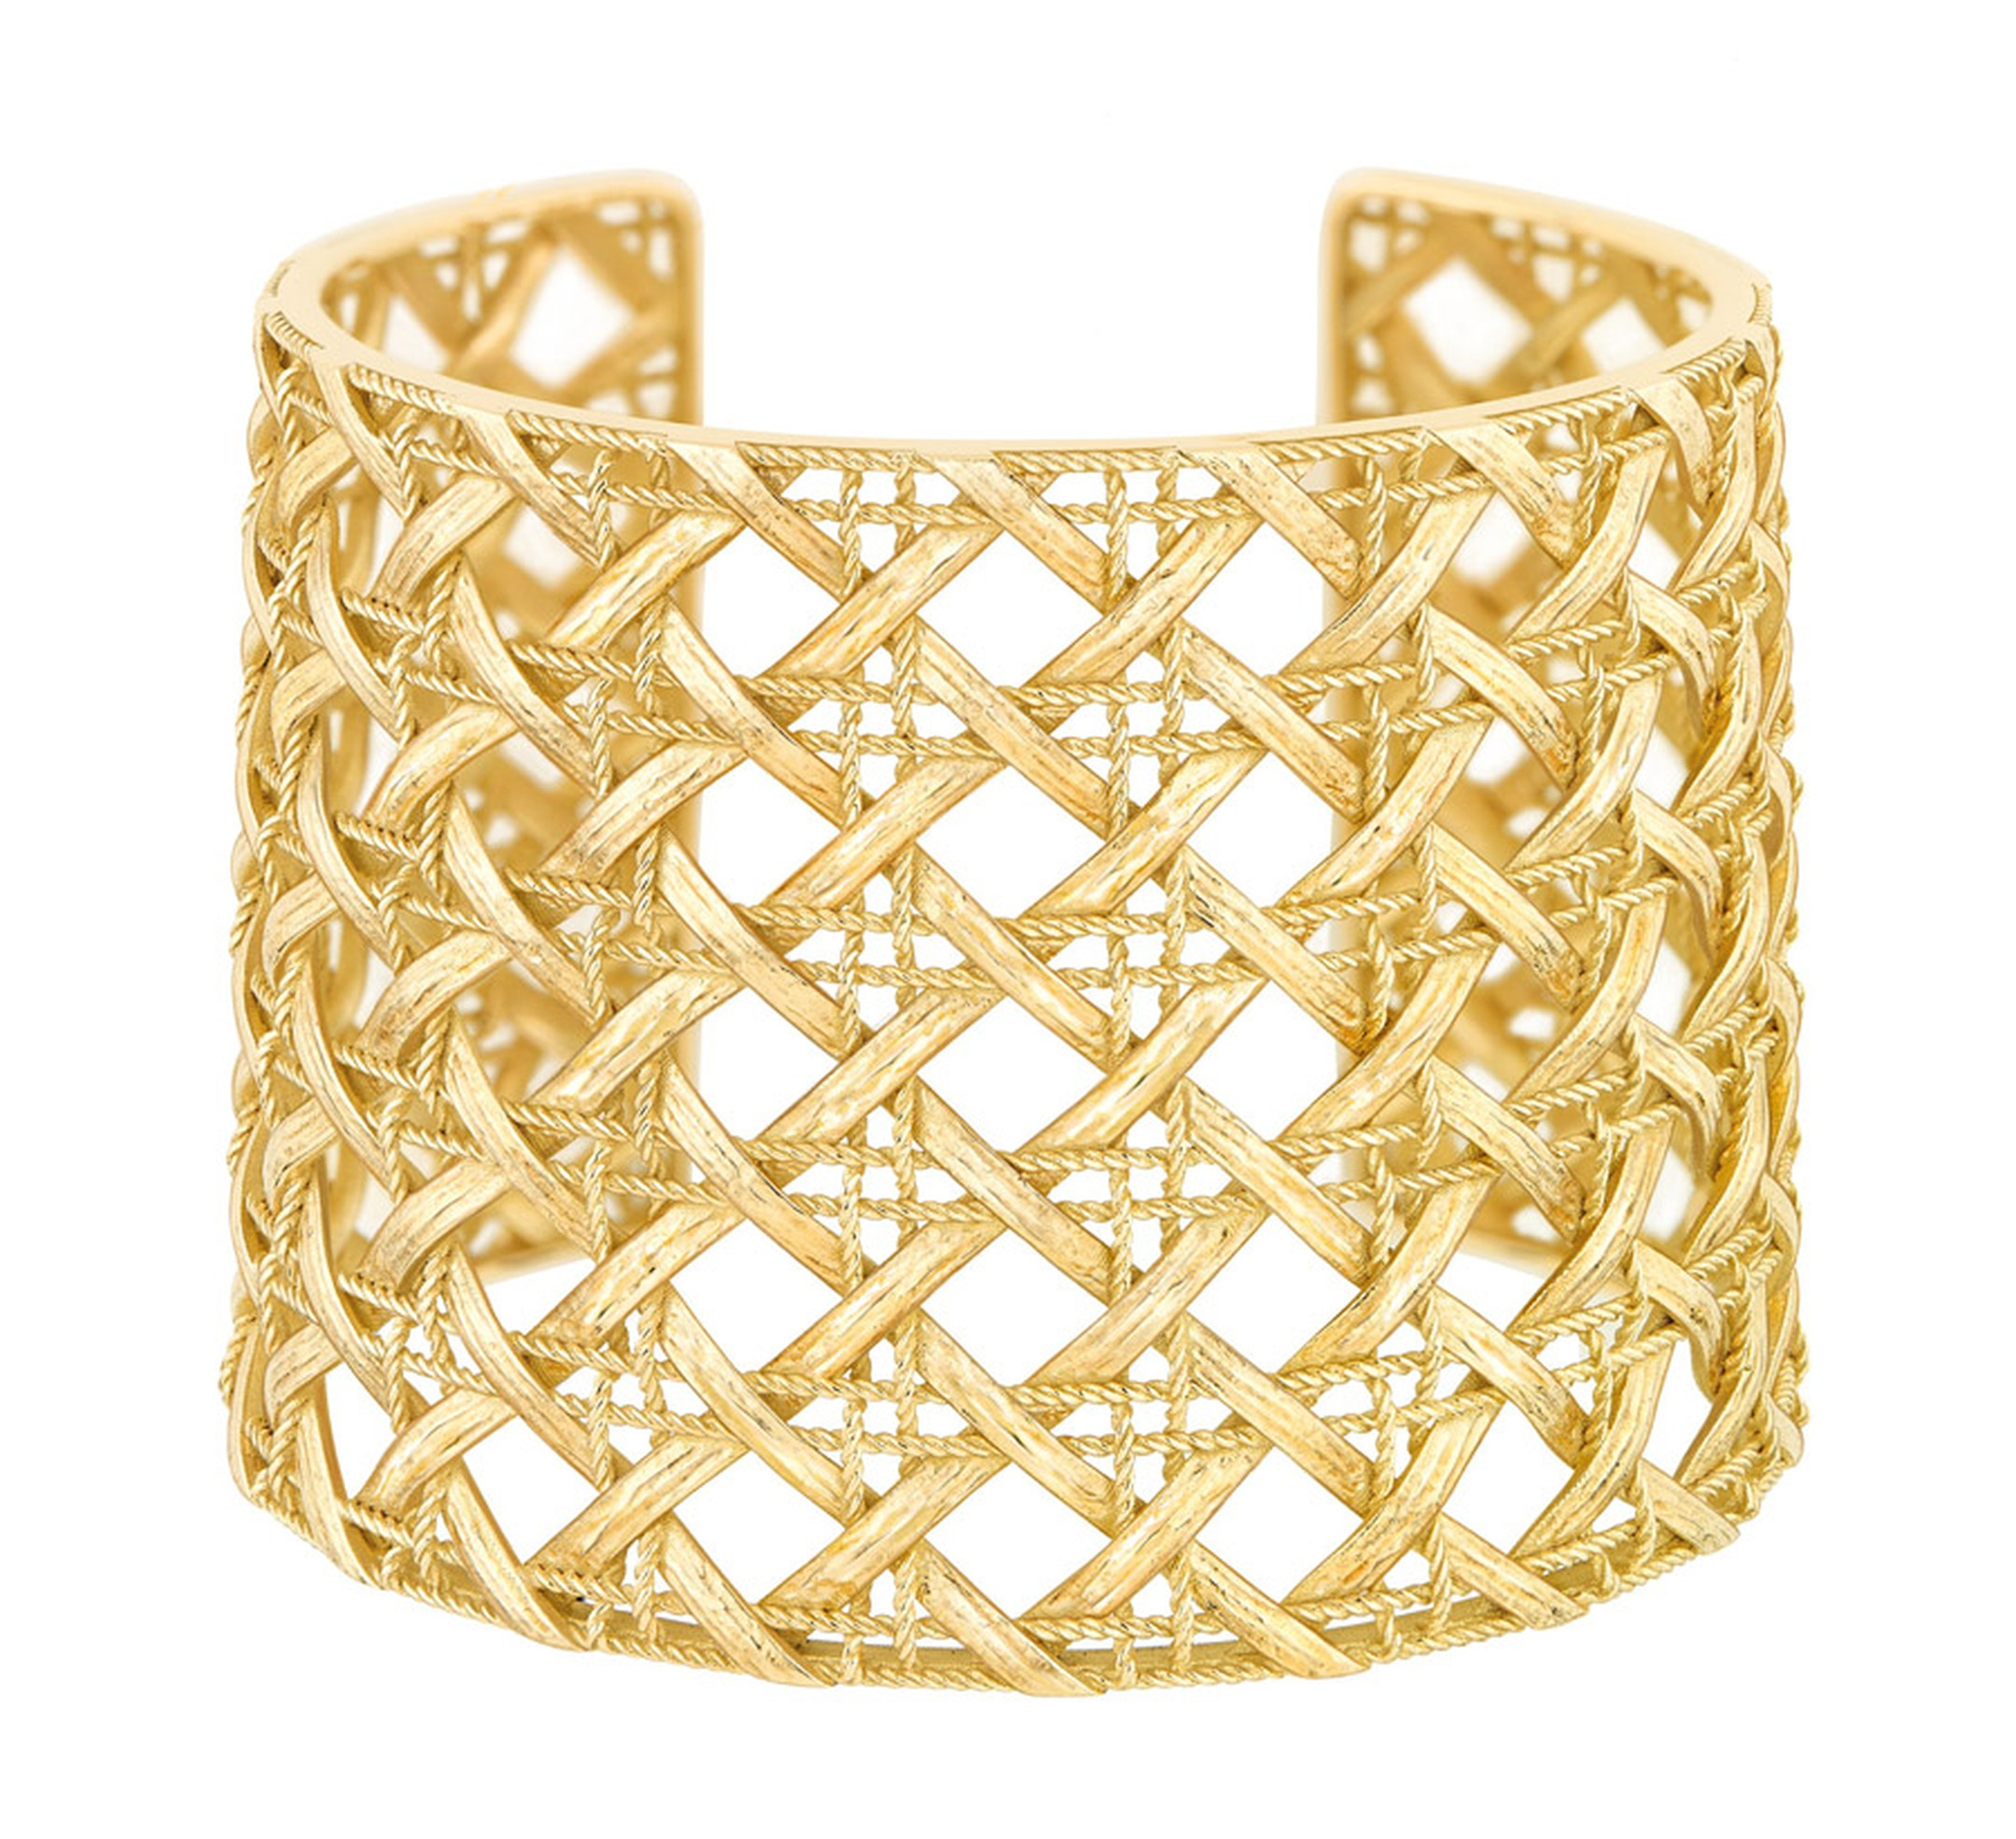 My-Dior-Cuff-Yellow-gold.jpg